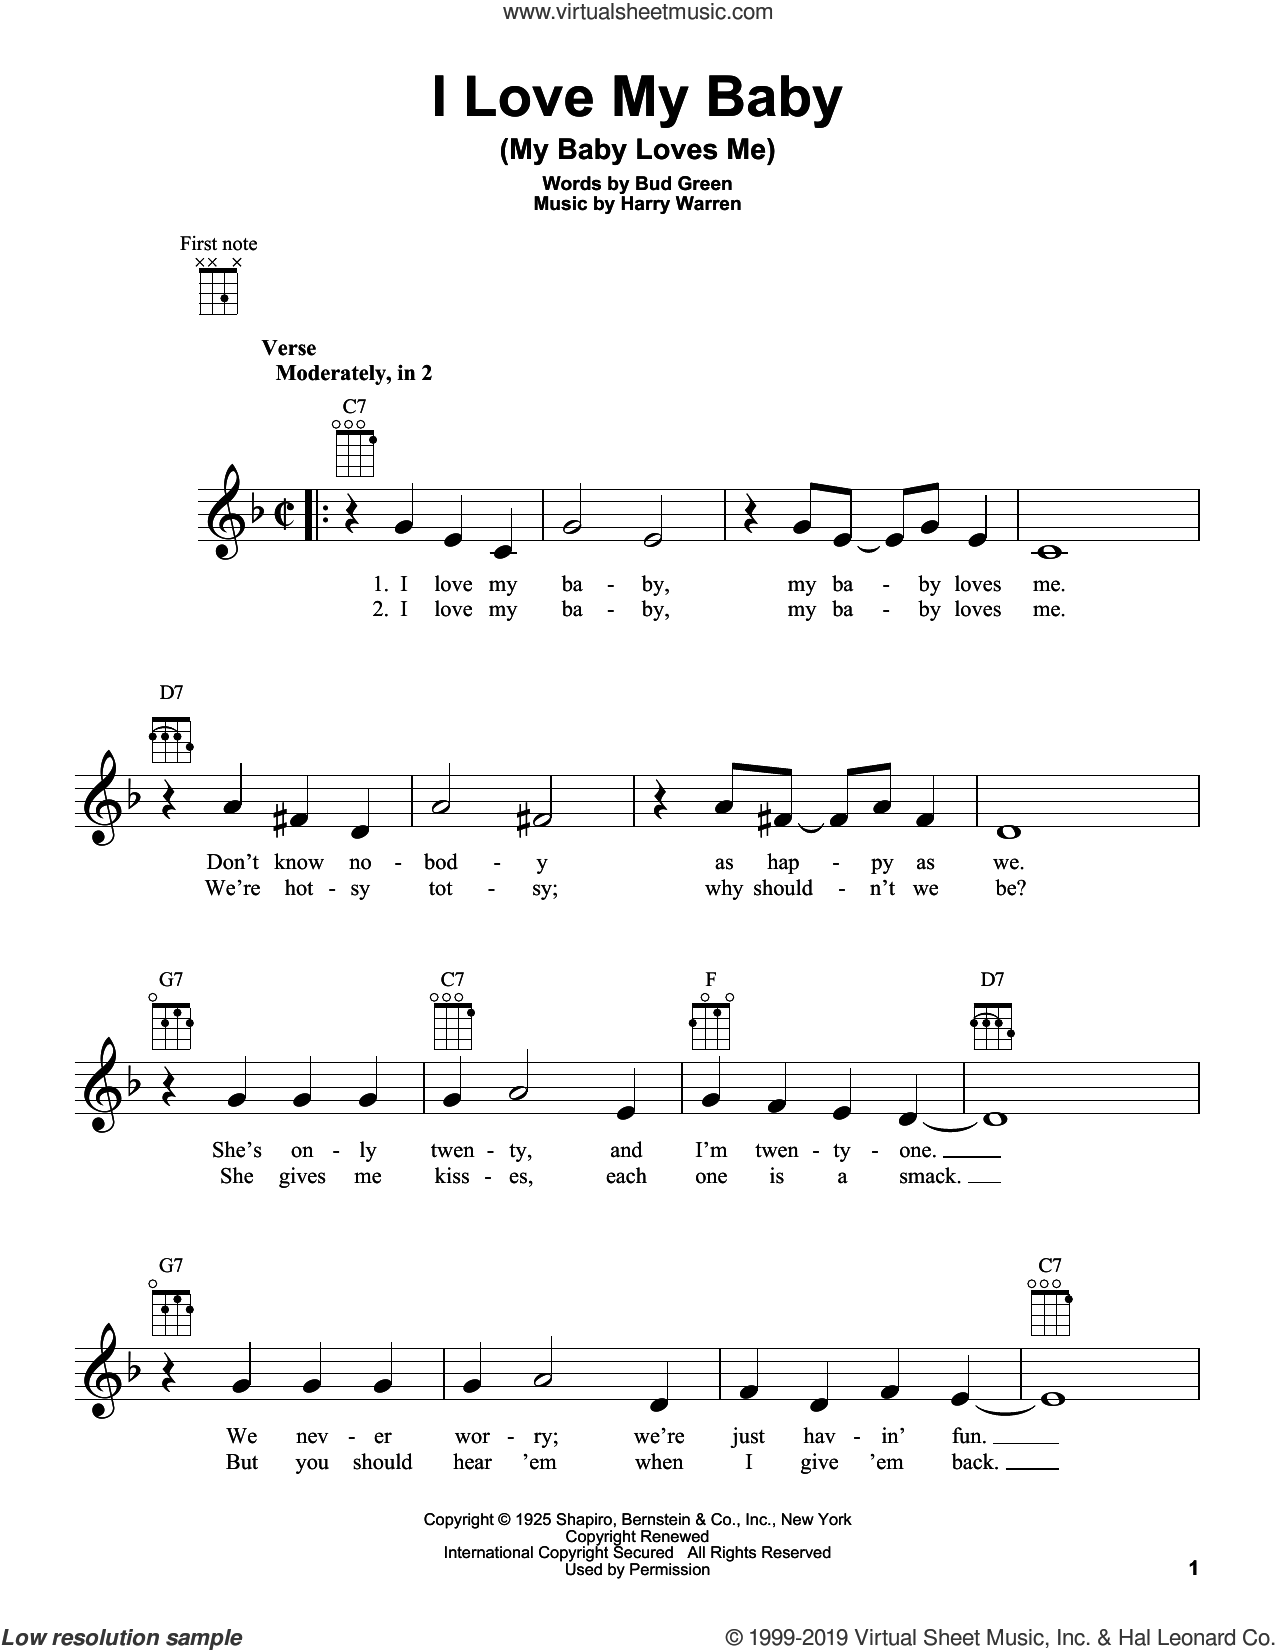 I Love My Baby (My Baby Loves Me) sheet music for ukulele by Harry Warren and Bud Green, intermediate skill level